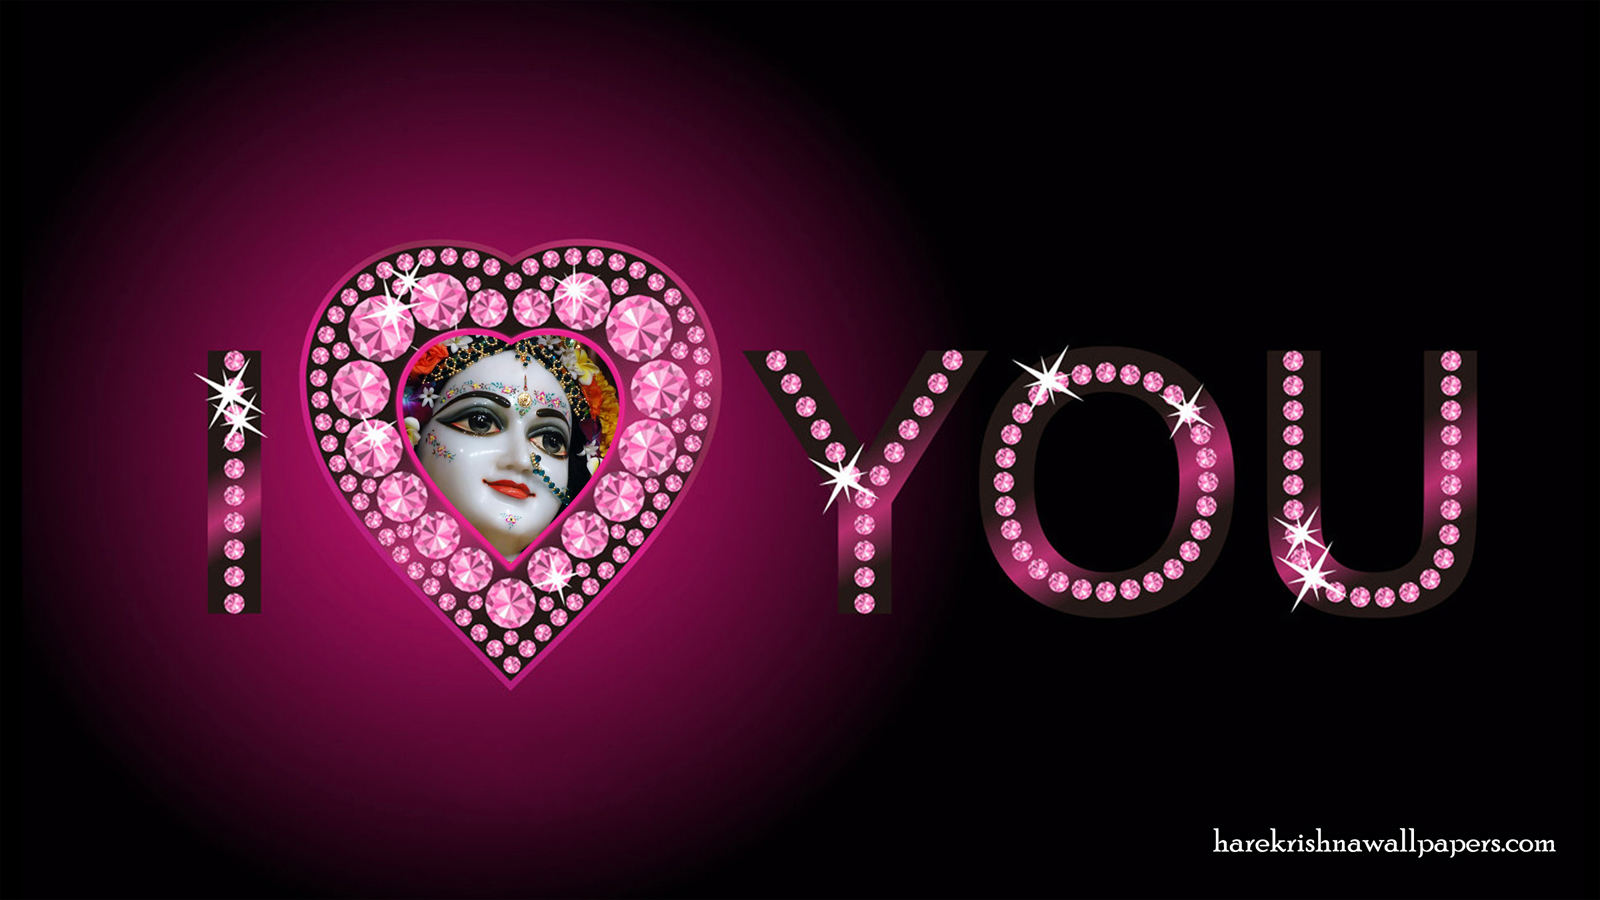 I Love You Radharani Wallpaper (013) Size 1600x900 Download